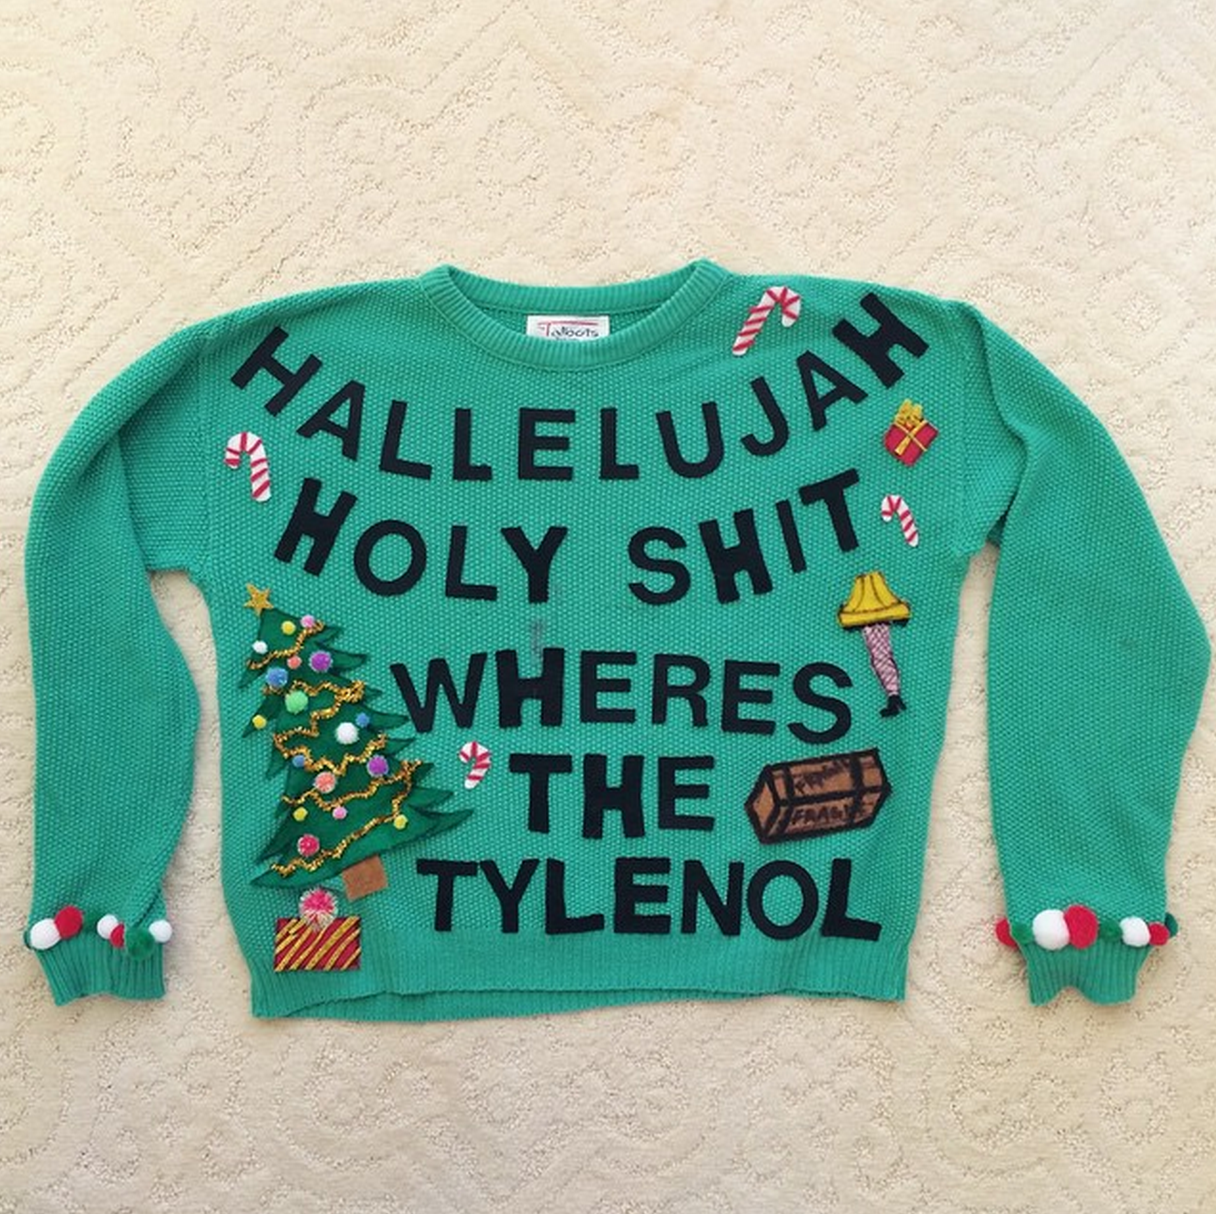 Diy Ugly Christmas Sweater Inspired By My Two Favorite Movies National Lampoons Christmas Vacation And A Christmas Story Wheresthetylenol